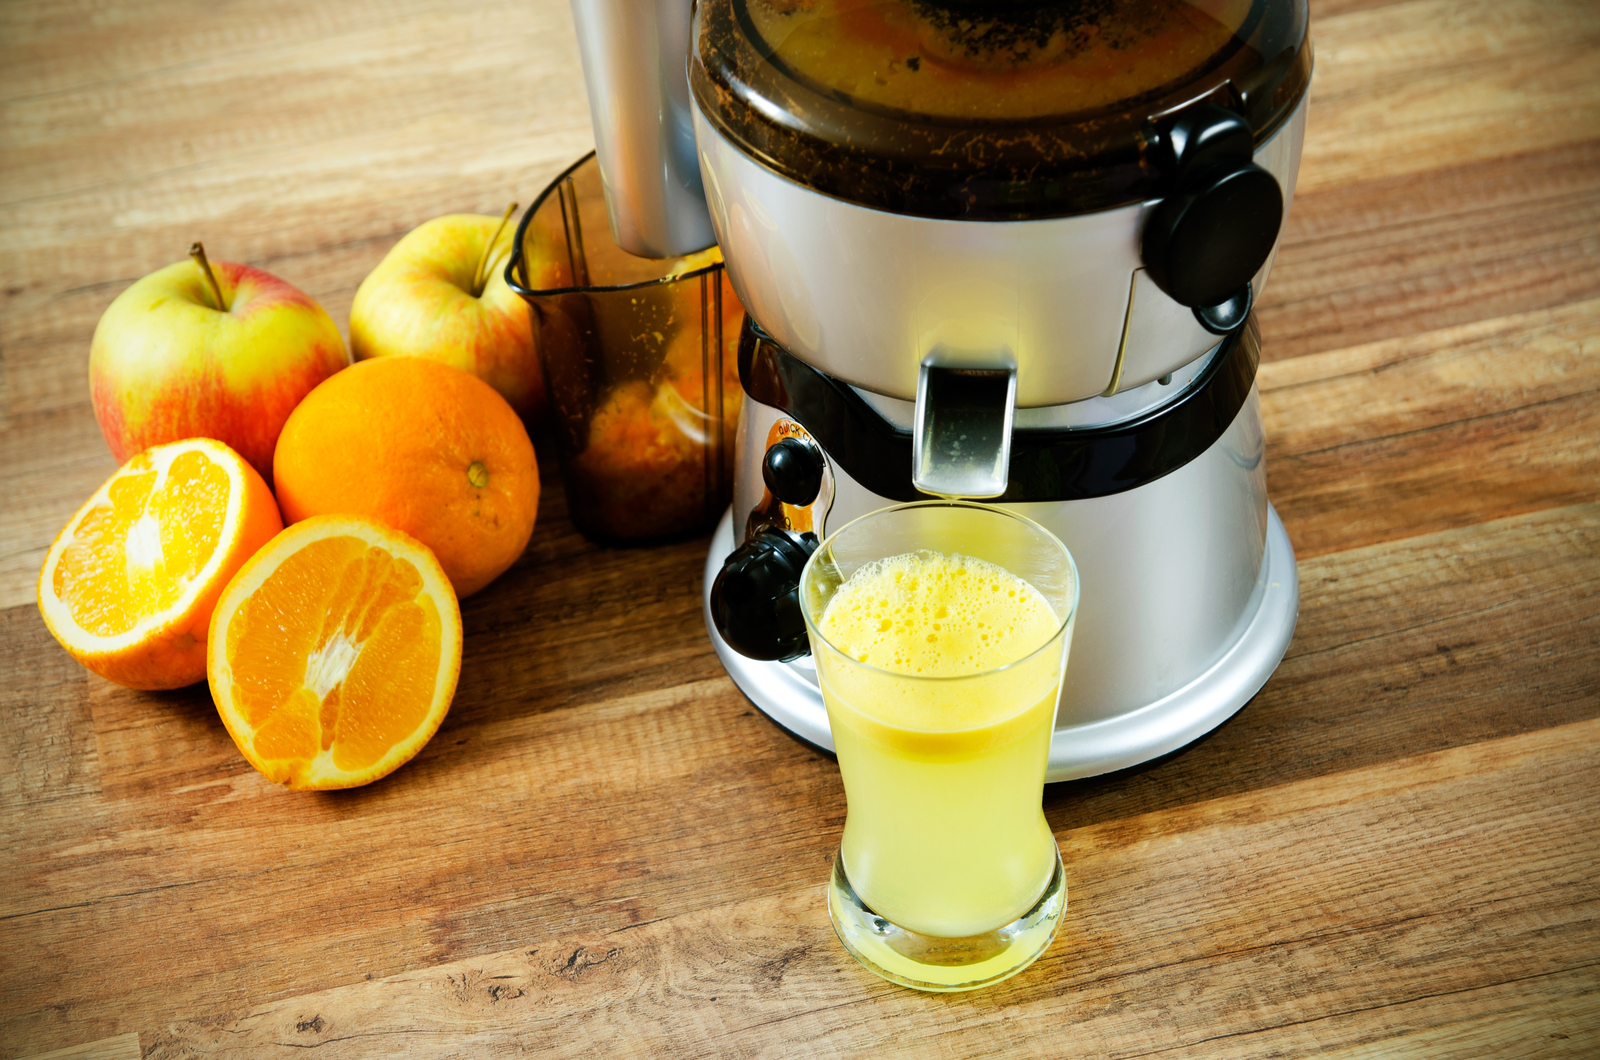 Juicer | 5 Easy and Tasty Juicing Recipes For Beginners